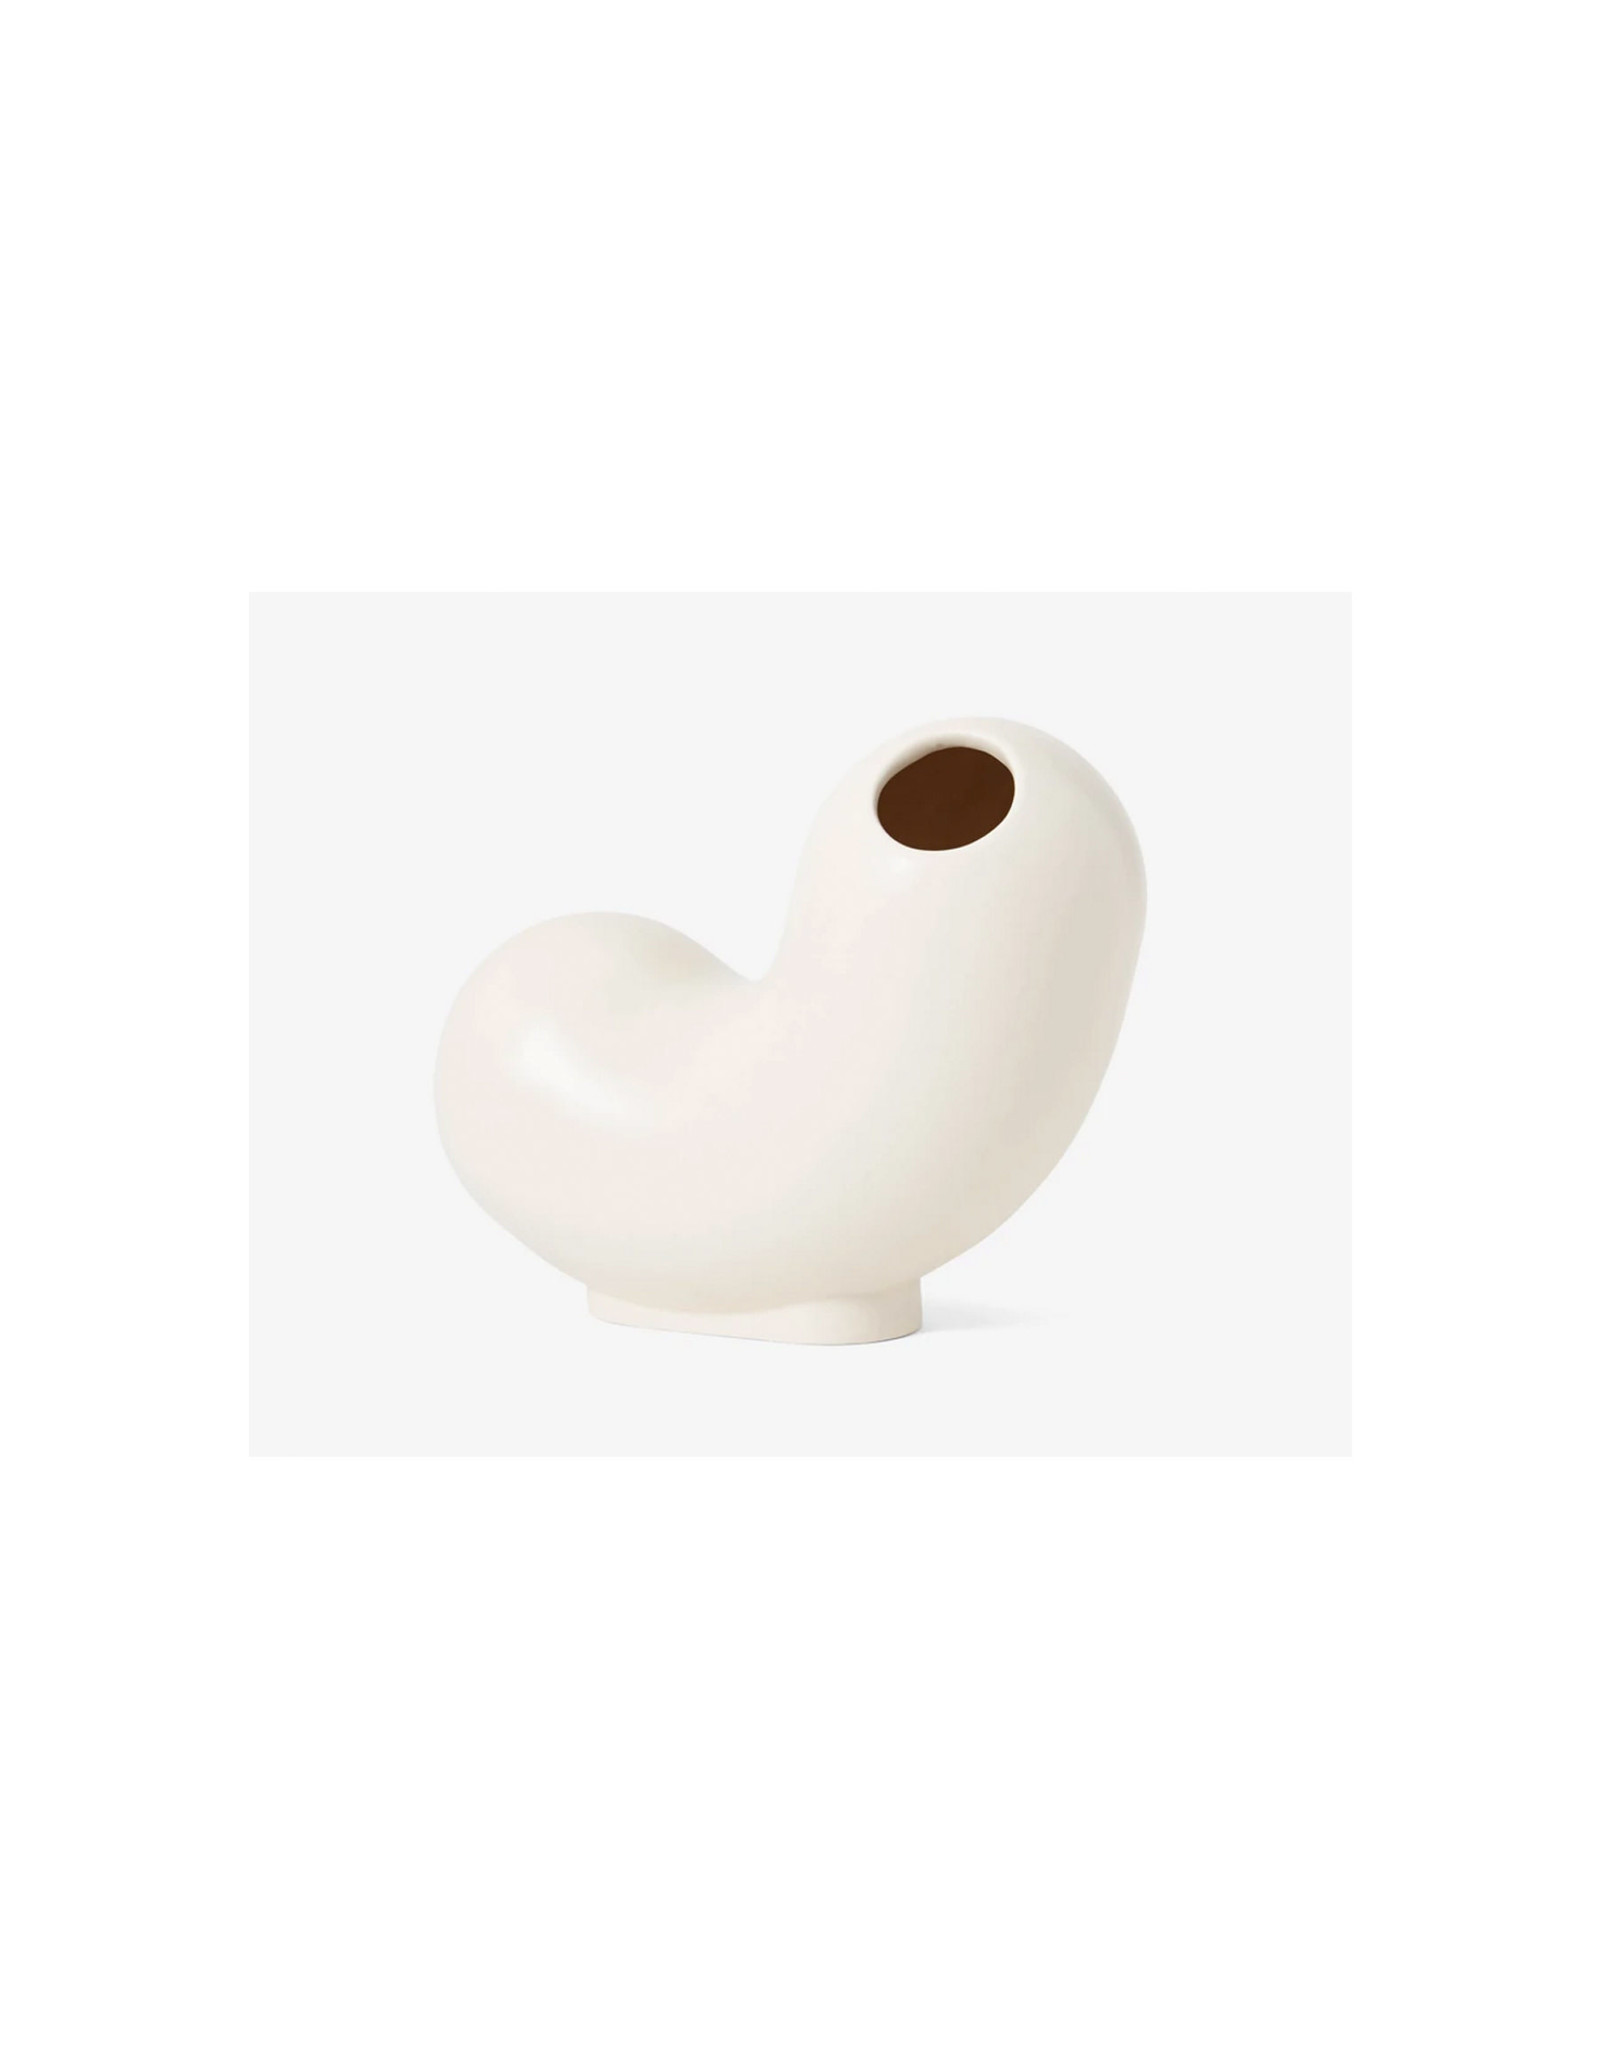 Areaware Kirby Vase, Curly, White